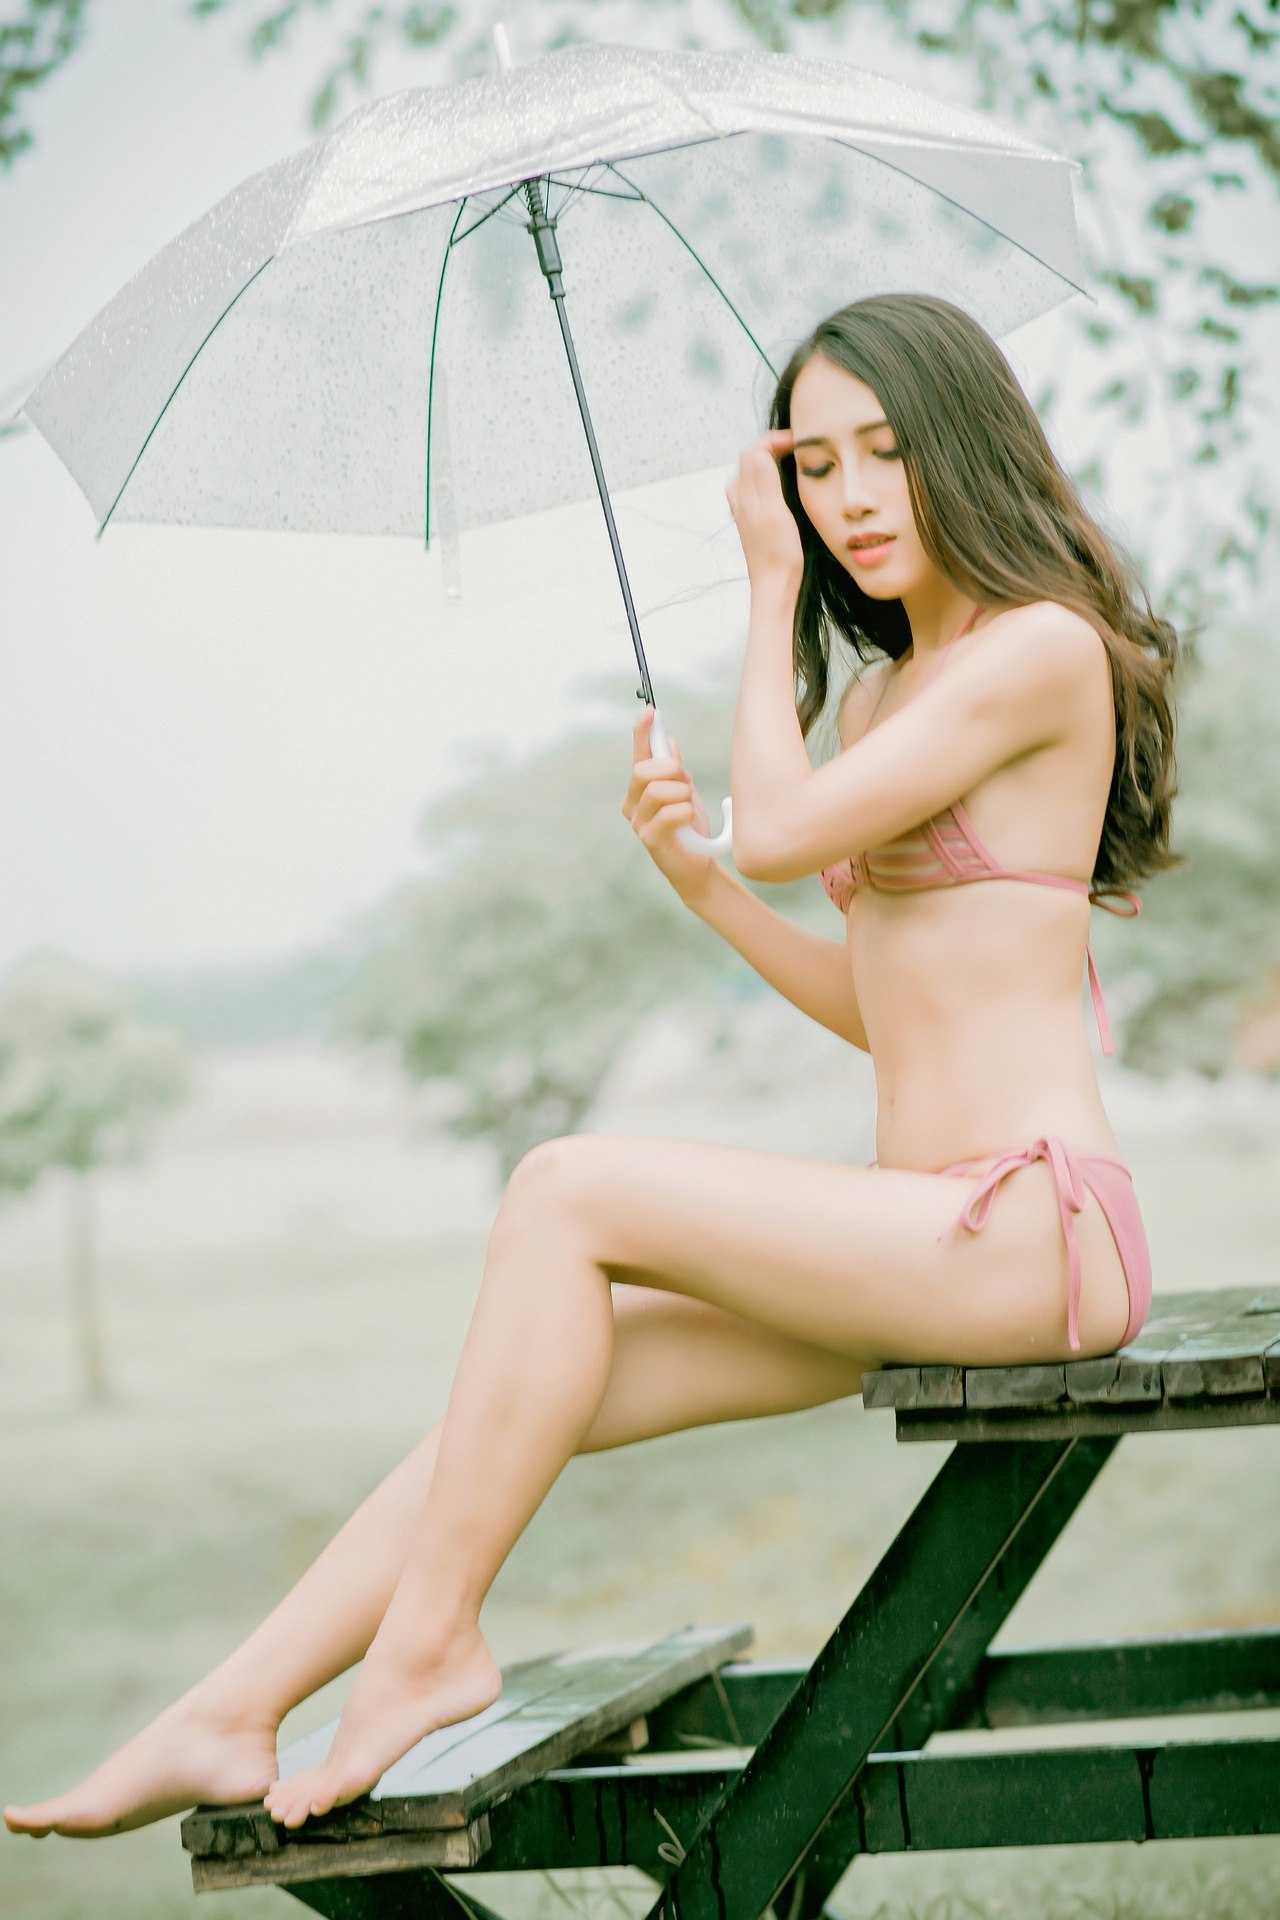 Asia Beauty Date Dating Site Post Thumbnail